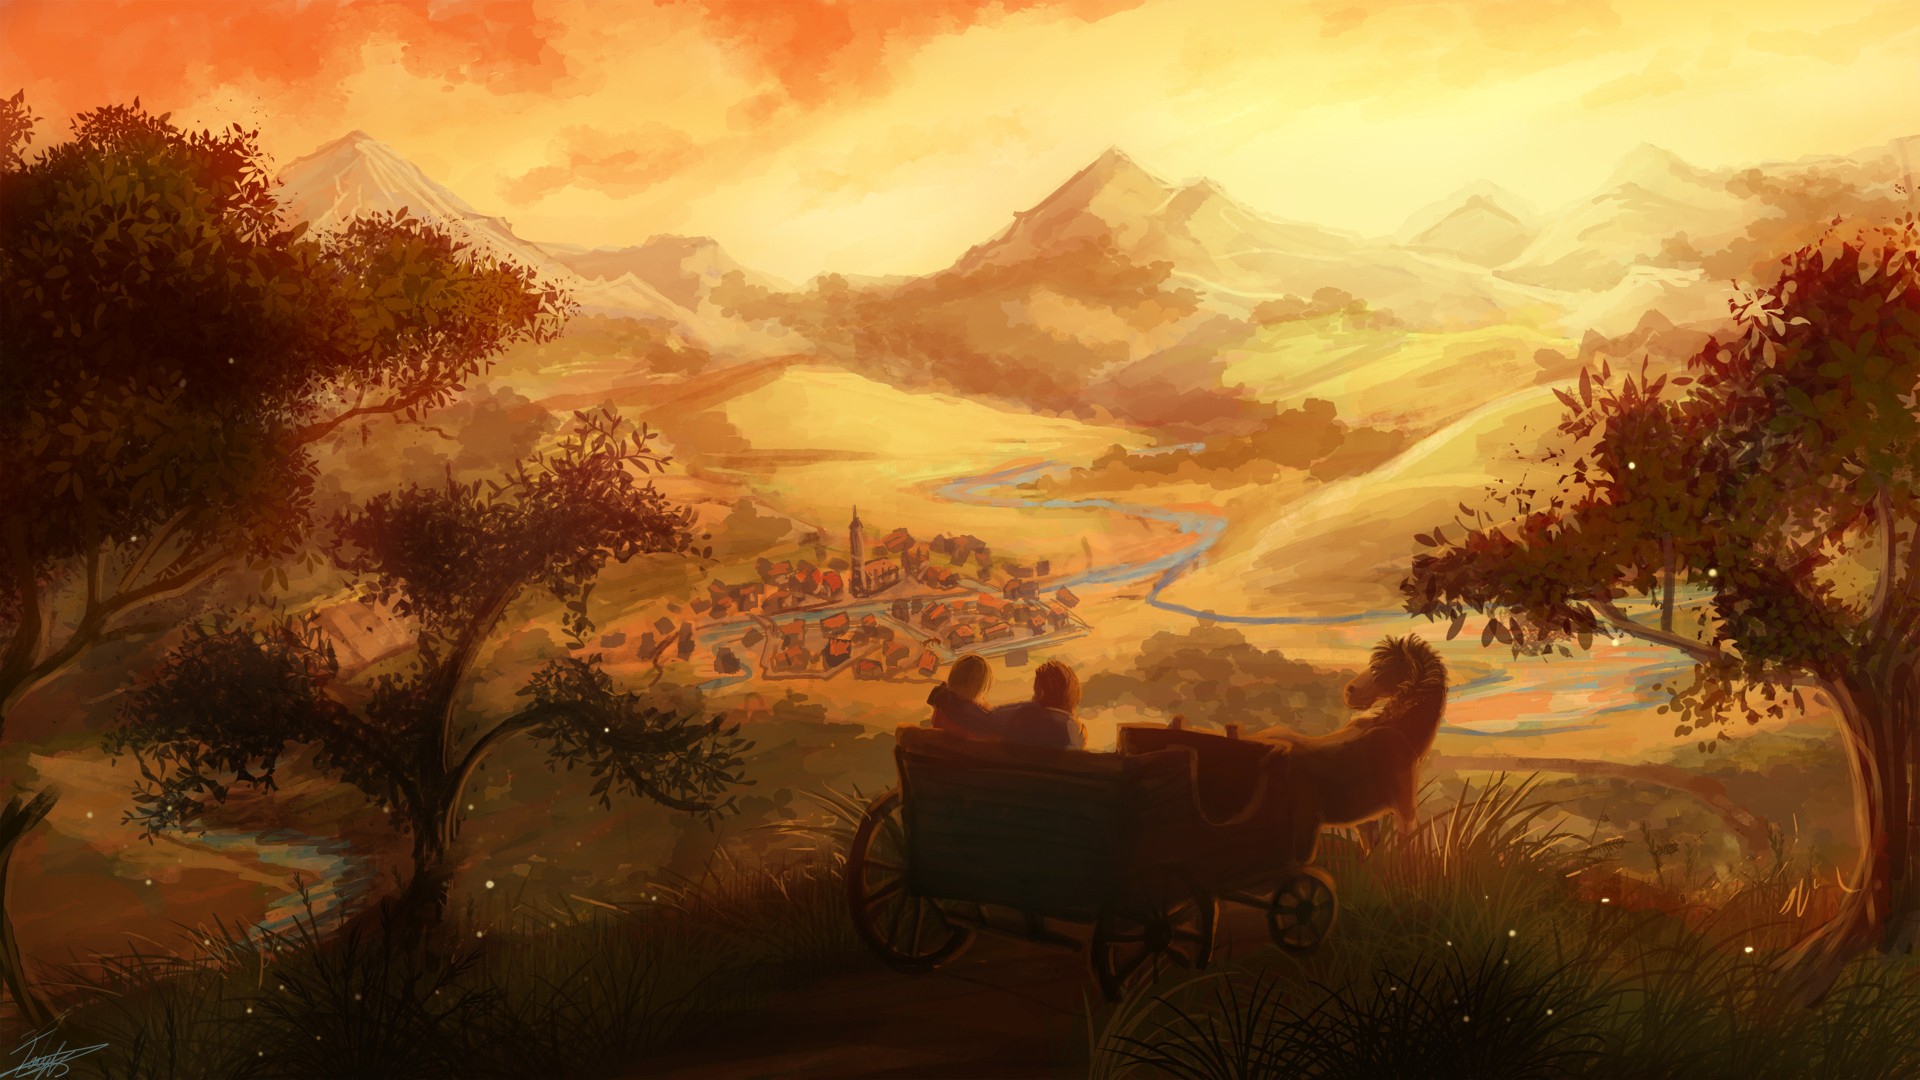 fantasy art love romance mood girl boy wagon landscapes cities town architecture buildings trees hill rivers